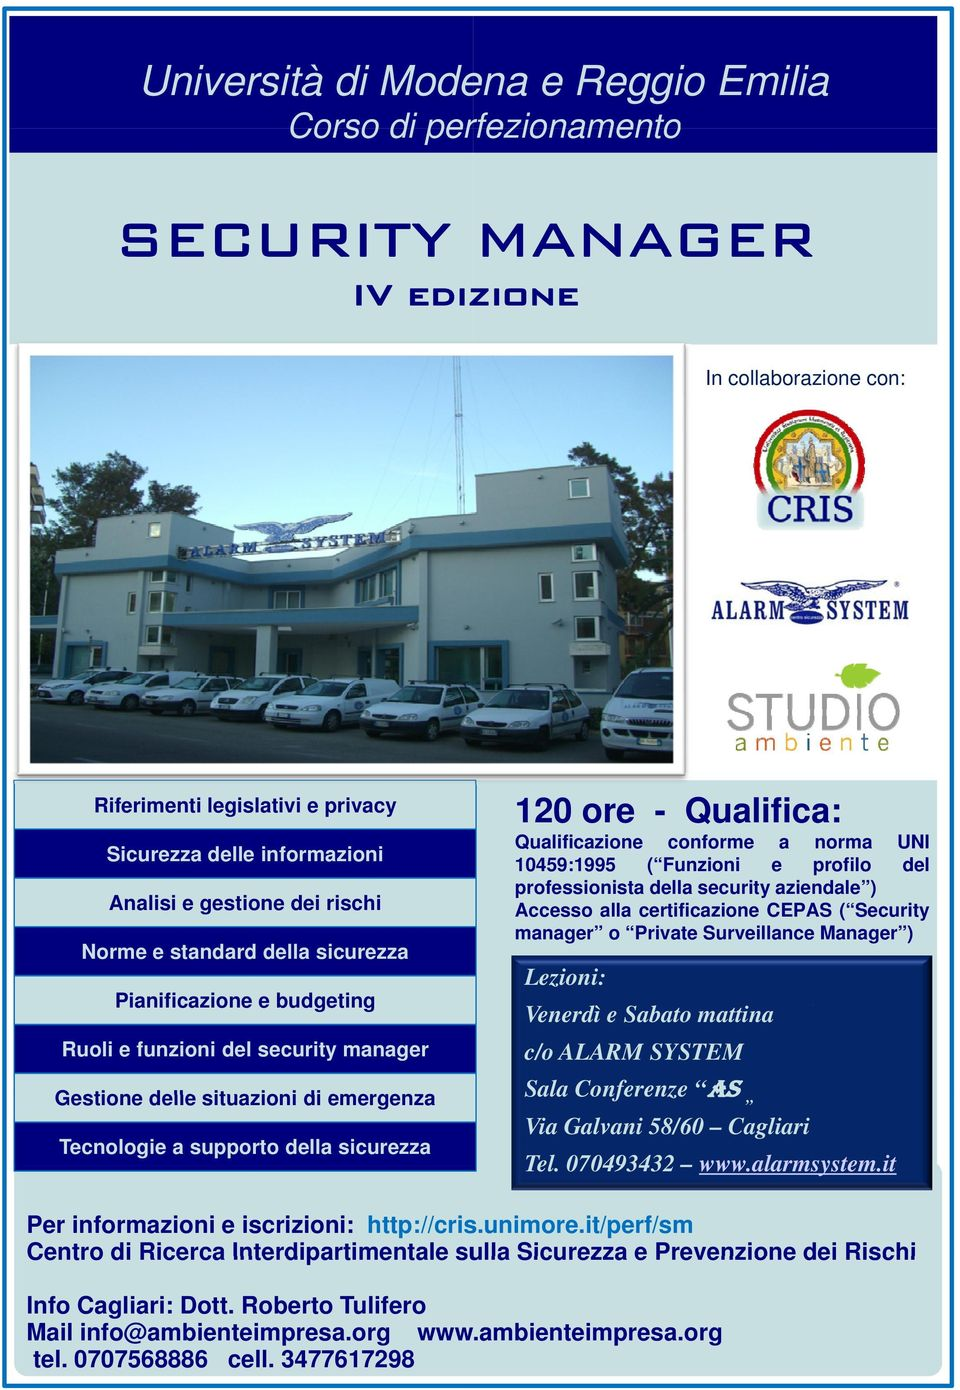 manager o Private manager Private Surveillance Manager Manager )) Norme e standard della sicurezza Lezioni: Pianificazione e budgeting Venerdì e Sabato mattina Ruoli e funzioni del security manager